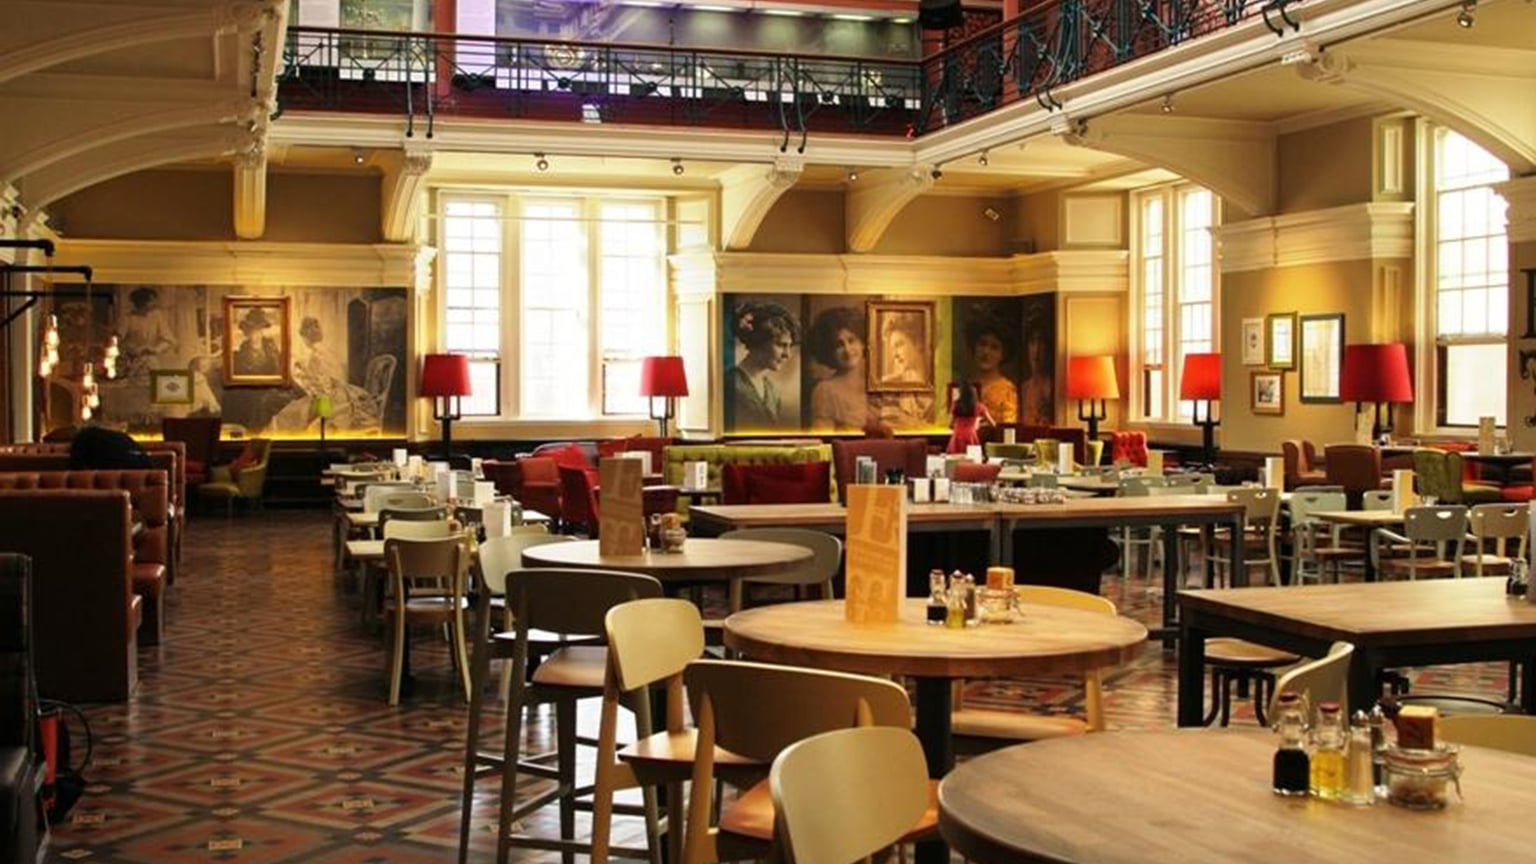 2. The Edwardian Tearooms, Birmingham Museum - 10% off café purchases with National Art Pass